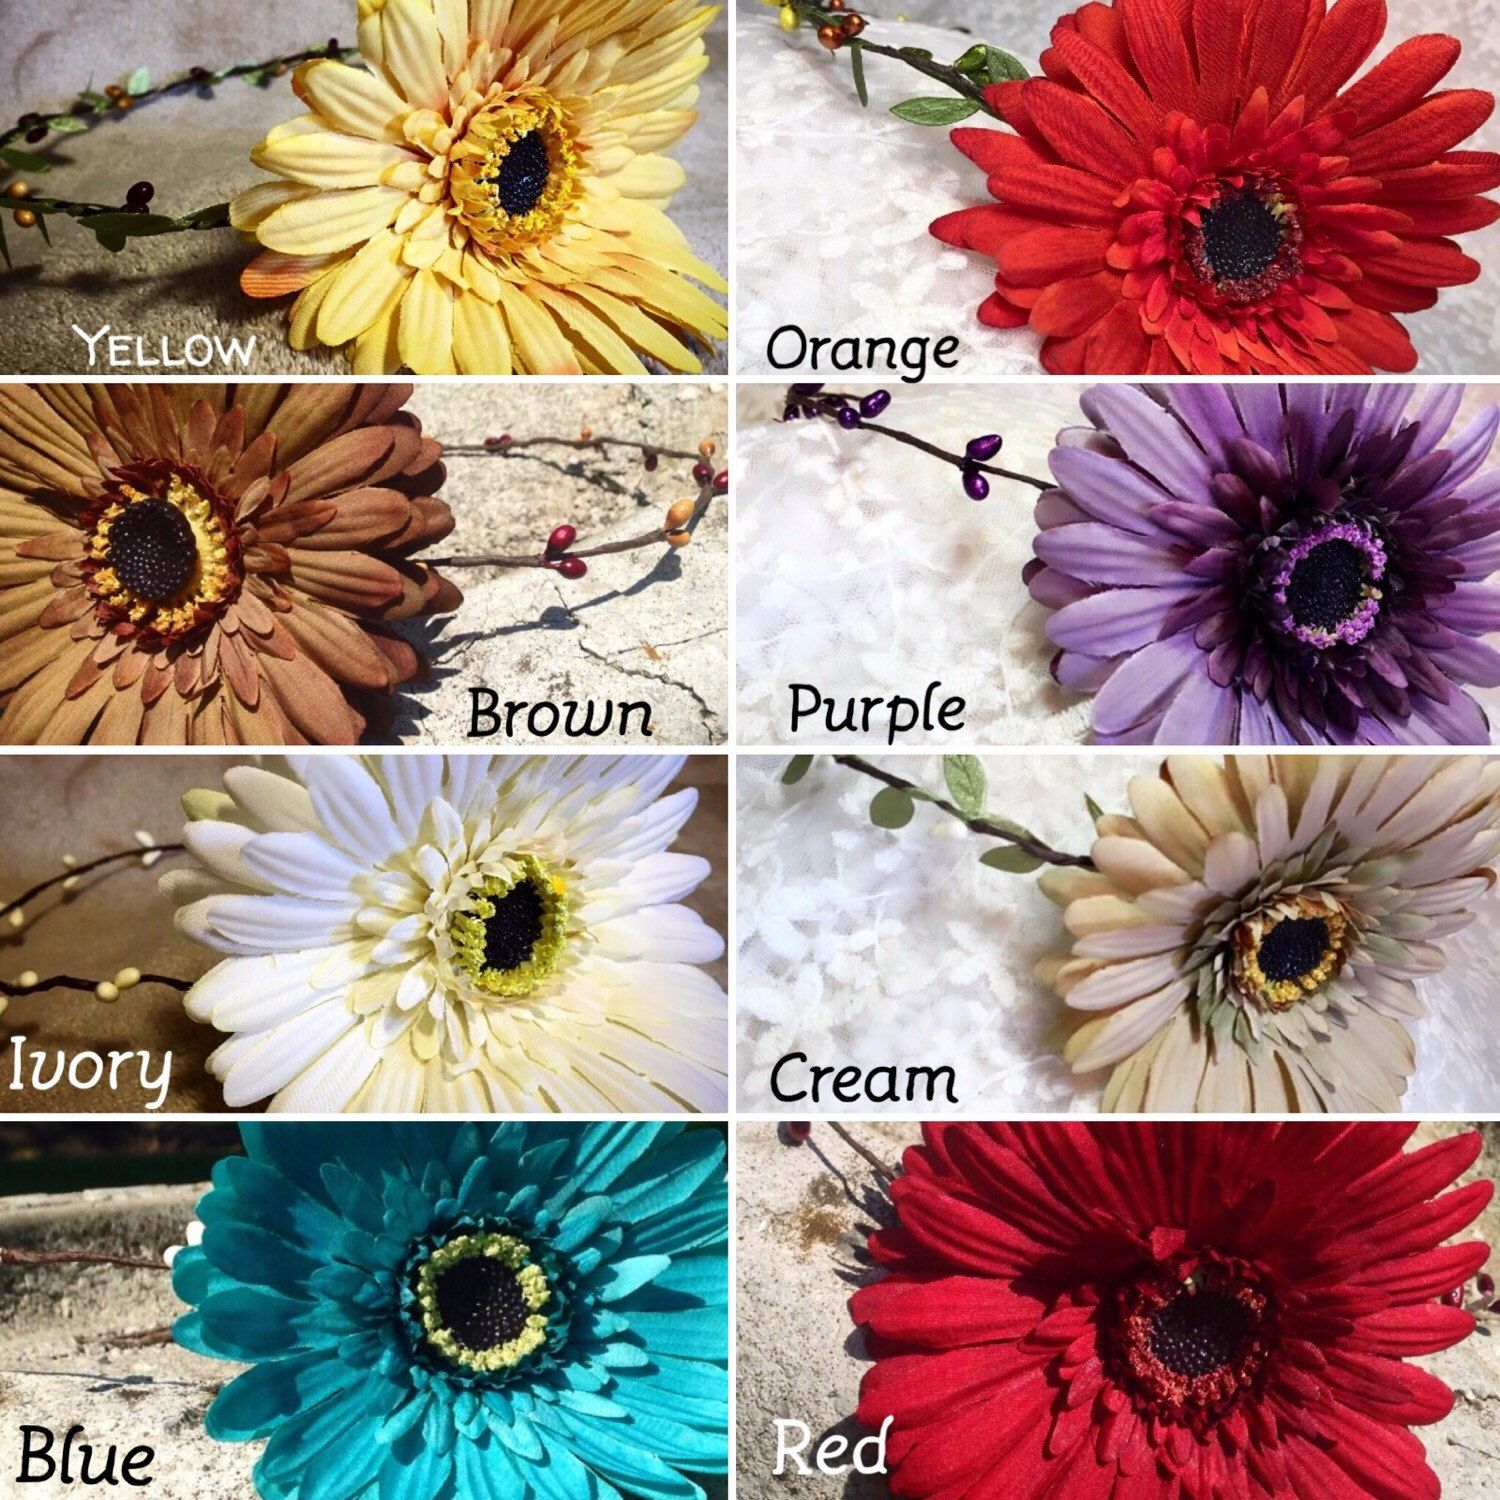 What Botanic Artistry Gerbera Daisy Stem Tiara Color Is Your